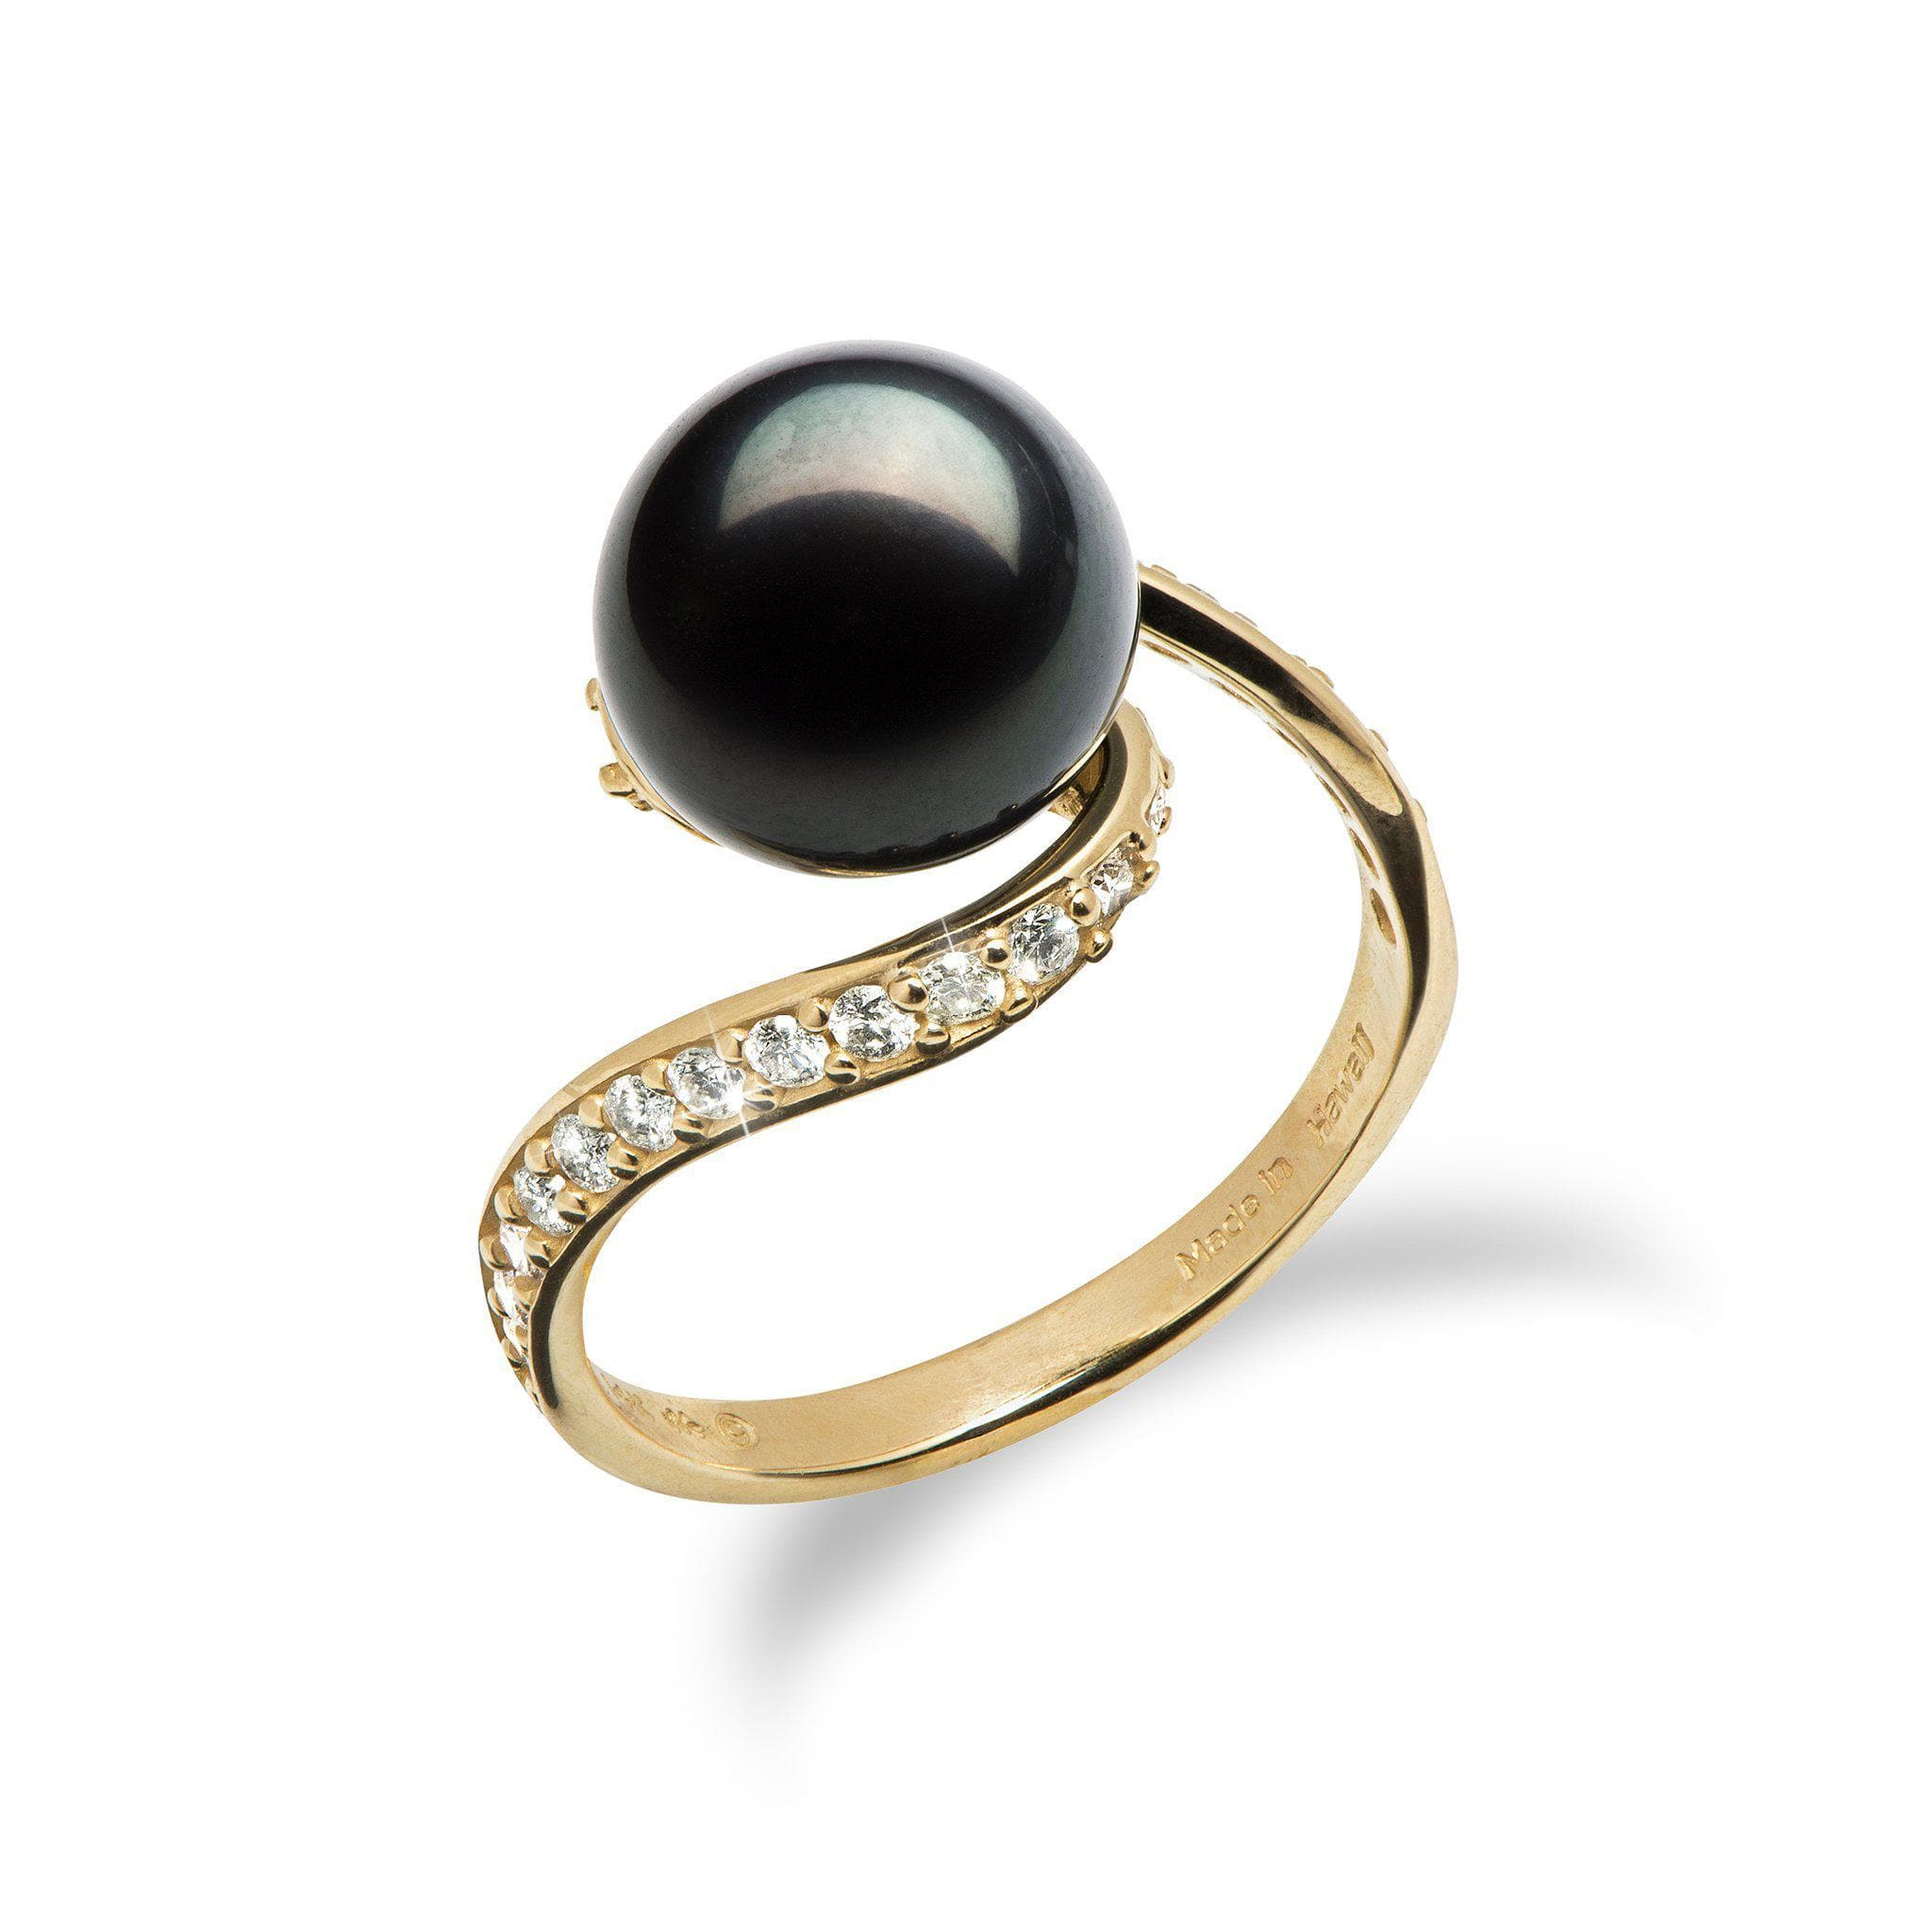 camelia and onyx lia agate wedding black colored gold sculpt chanel ring us in fine rings packshot cam stone white p jewelry diamond default